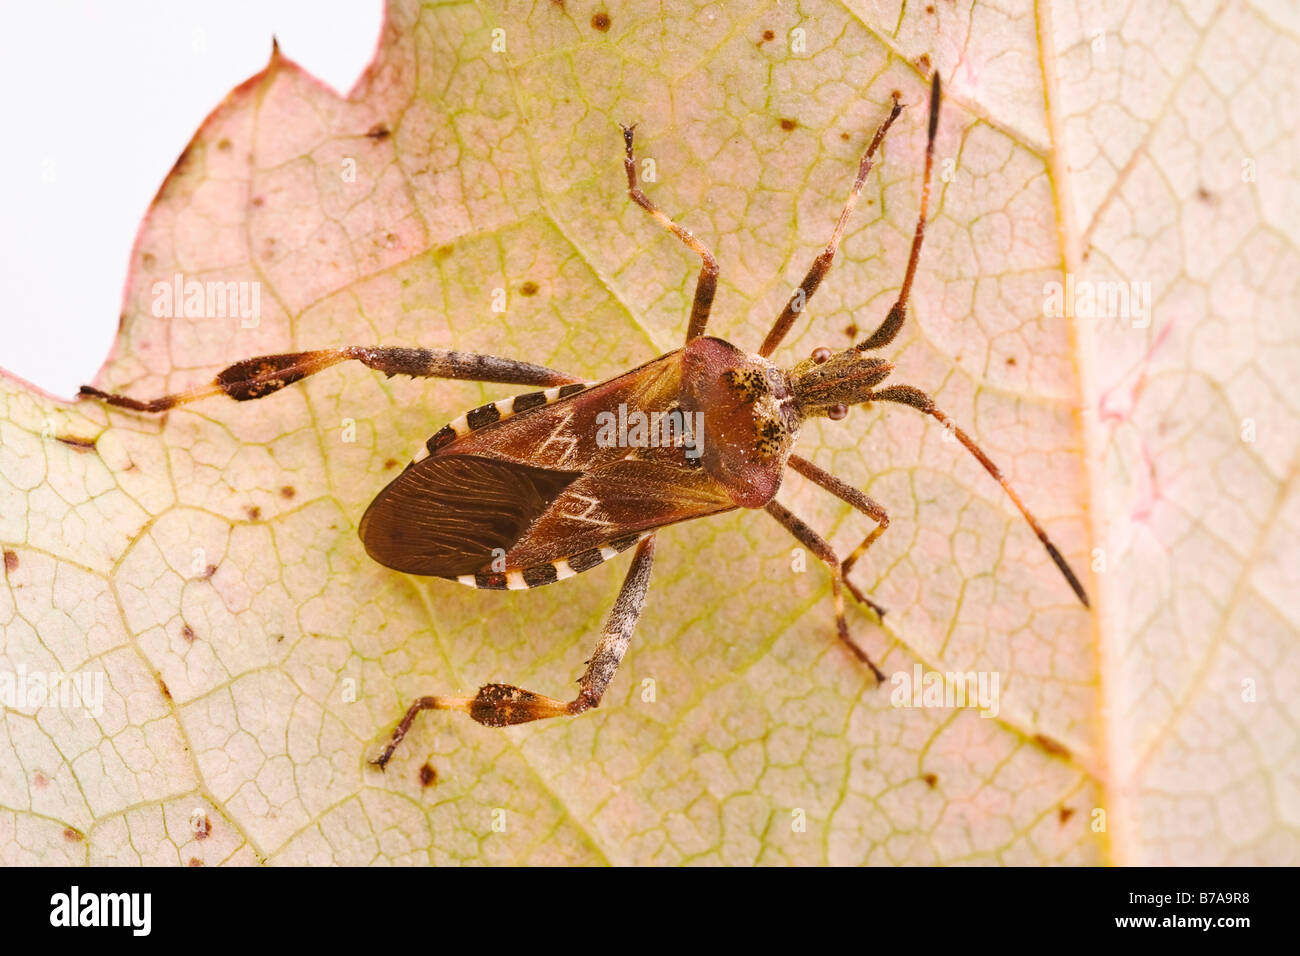 Western Conifer Seed Bug (Leptoglossus occidentalis) on an autumn leaf - Stock Image